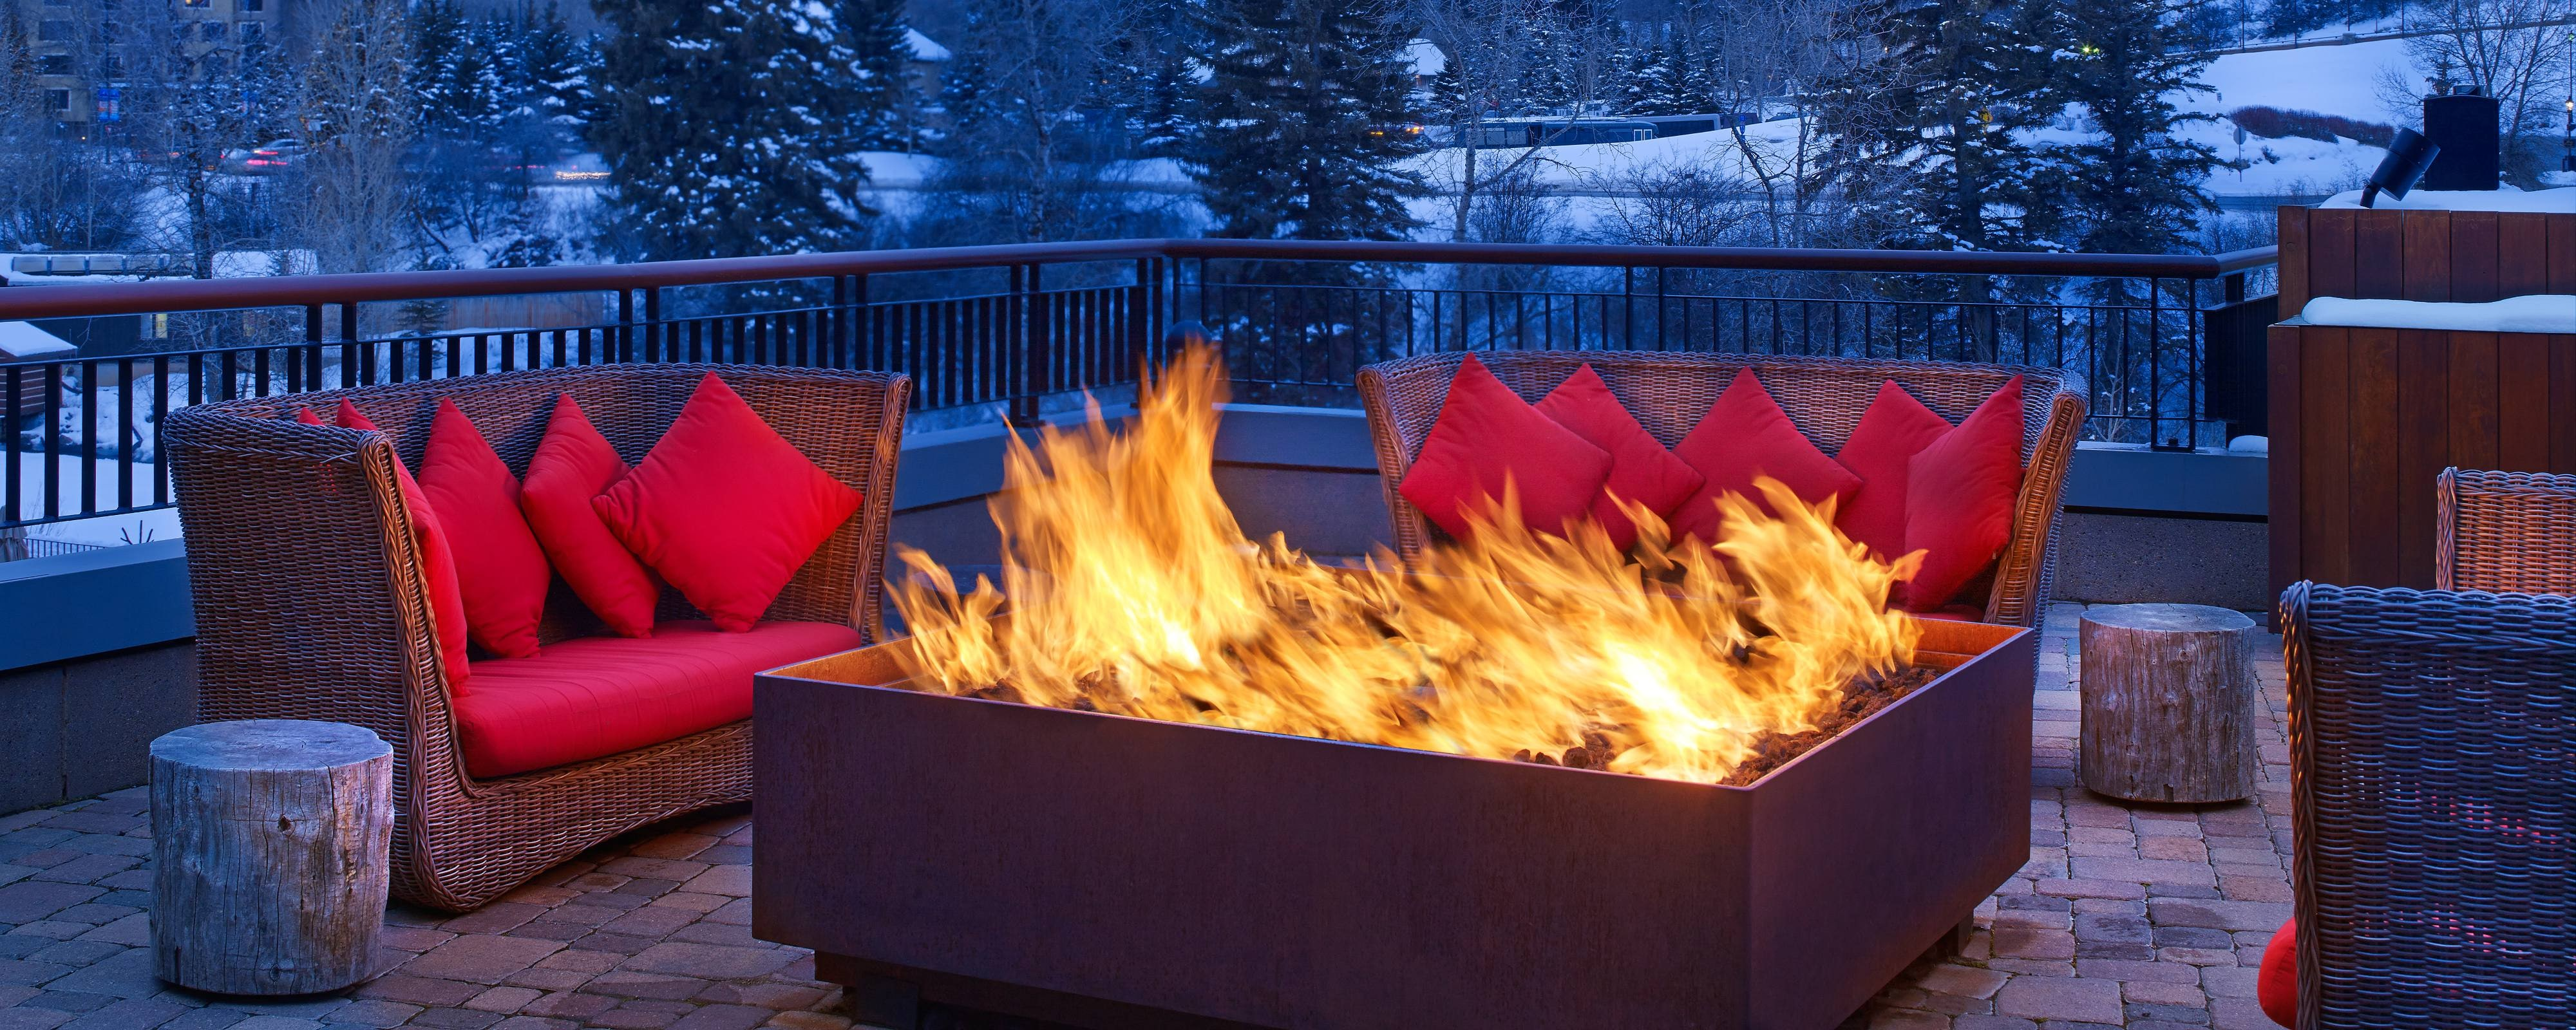 The Westin Riverfront Maya Fire Pits